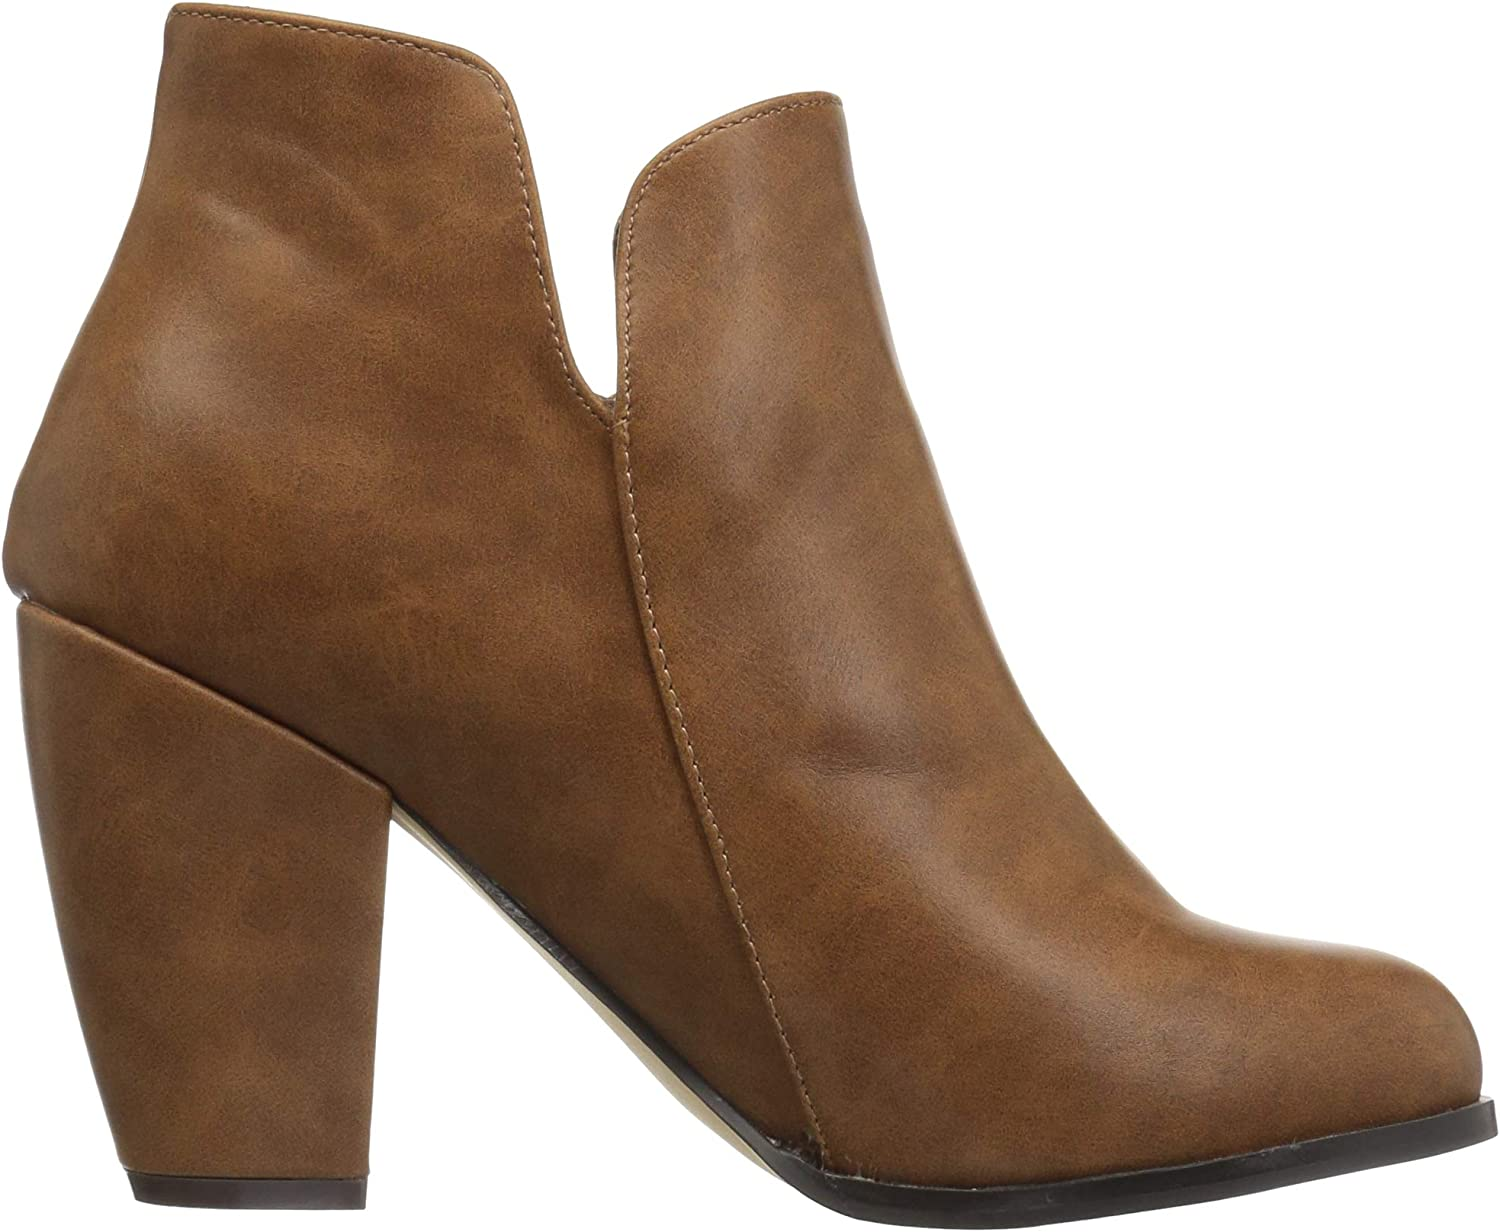 Michael Antonio Womens Marlie-aw17 Ankle Boot,